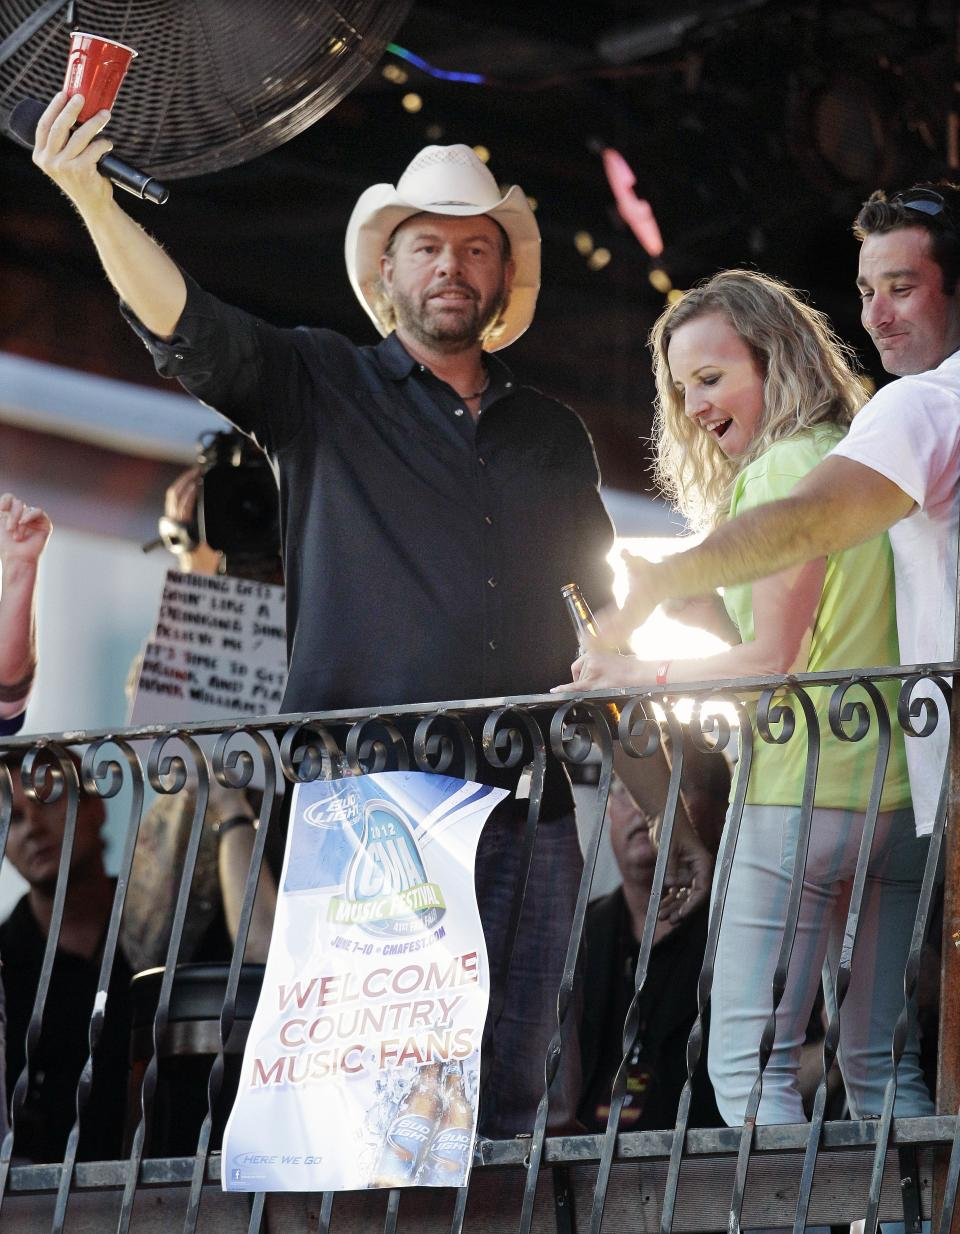 Toby Keith, left, acknowledges the crowd as he stands on a restaurant terrace to introduce an act during the CMT Music Awards show on Wednesday, June 6, 2012, in Nashville, Tenn. (AP Photo/Mark Humphrey)